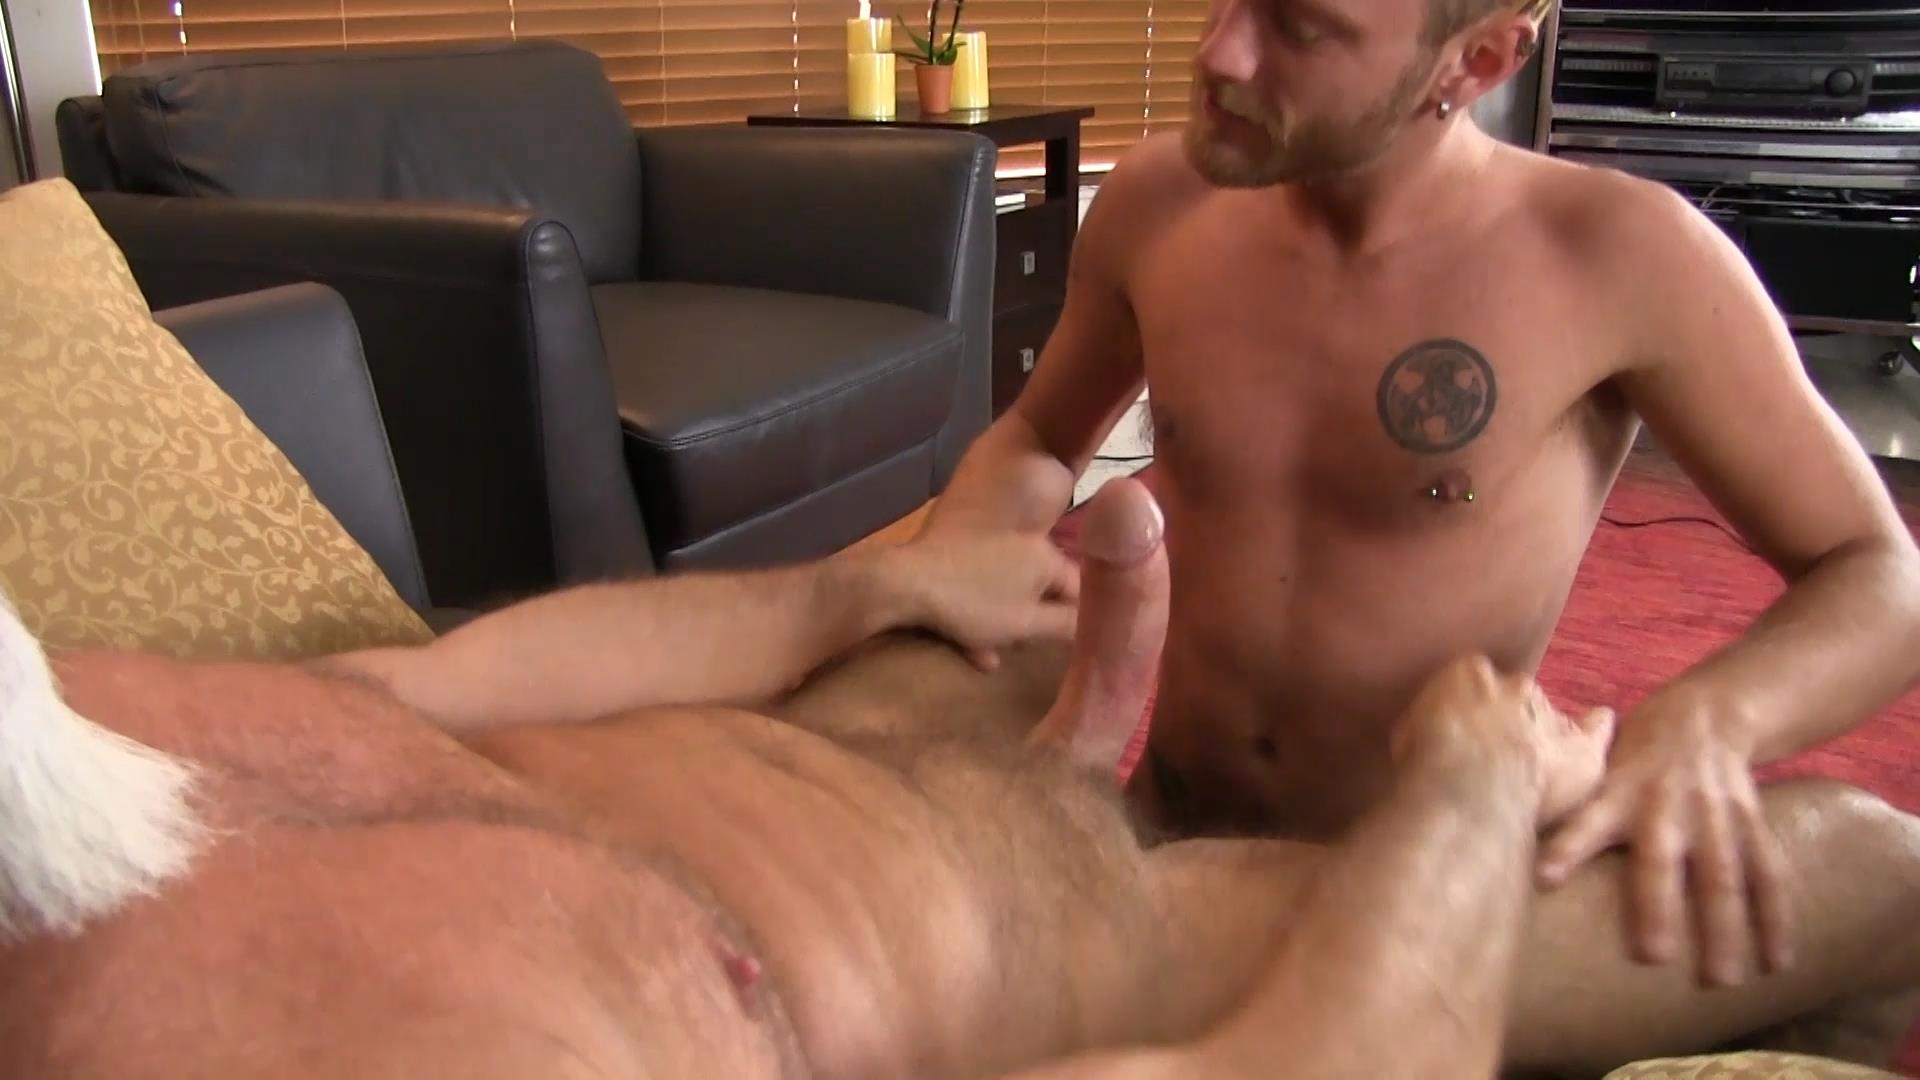 Bareback Me Daddy Silver Daddy Barebacks Younger Guy Amateur Gay Porn 05 Getting Barebacked By A Thick Daddy Dick